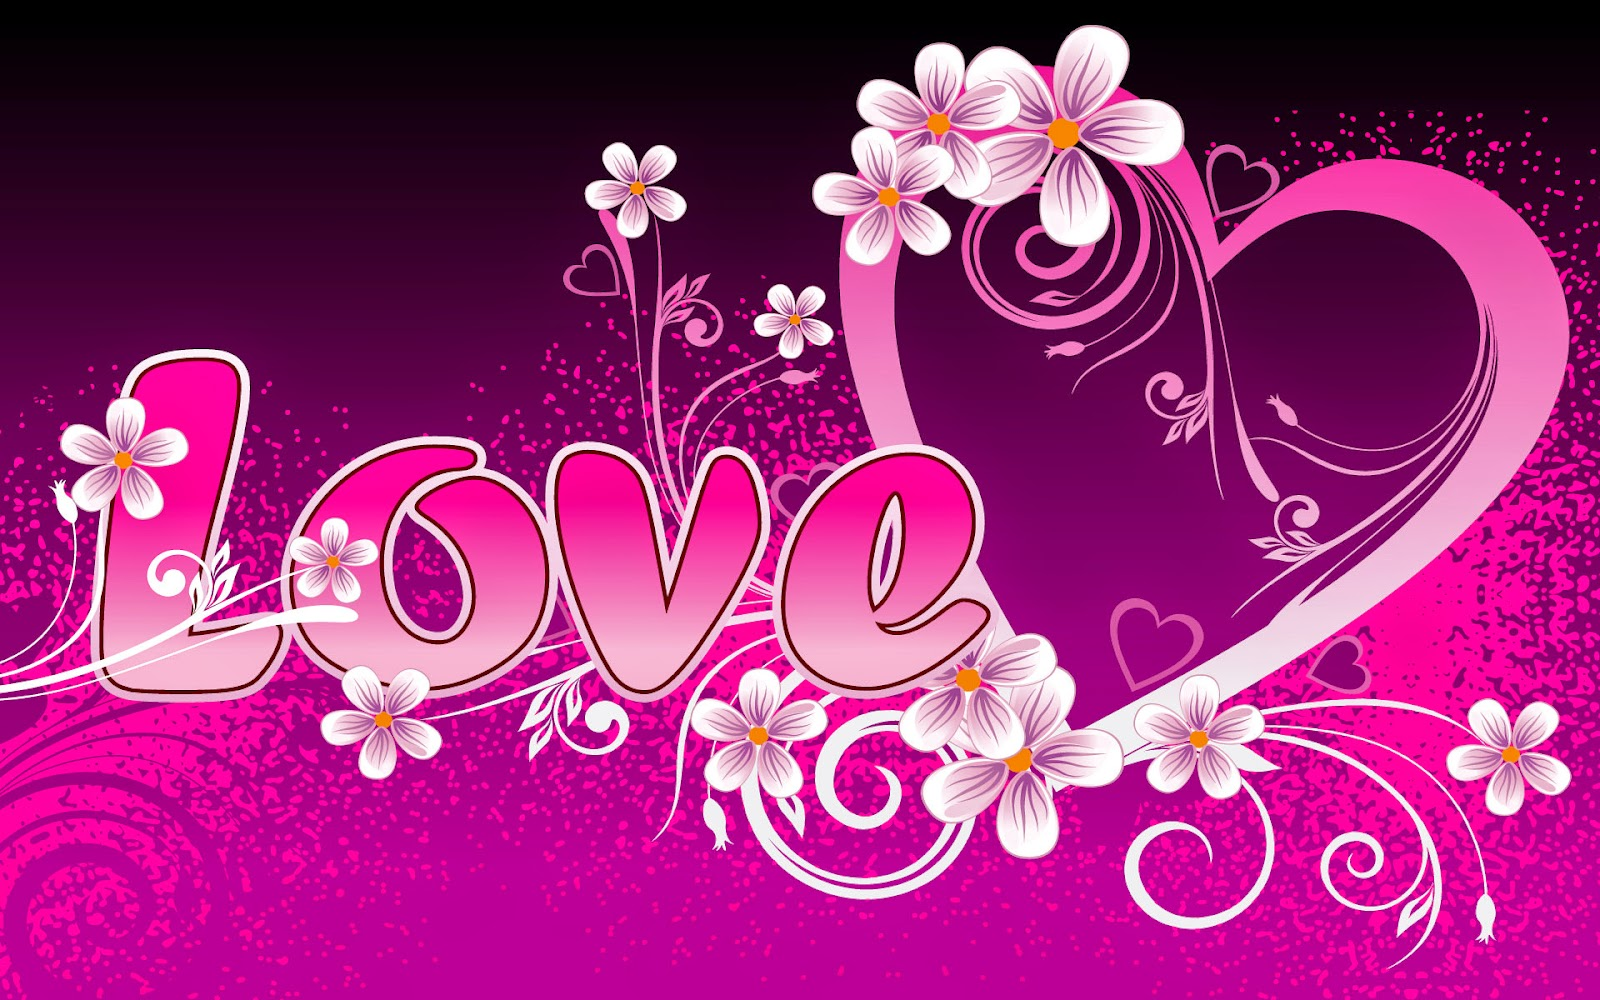 New Love Beautiful Wallpaper : HD WALLPAPER: most beautiful love wallpapers(High Definition) High Quality Desktop Wallpapers